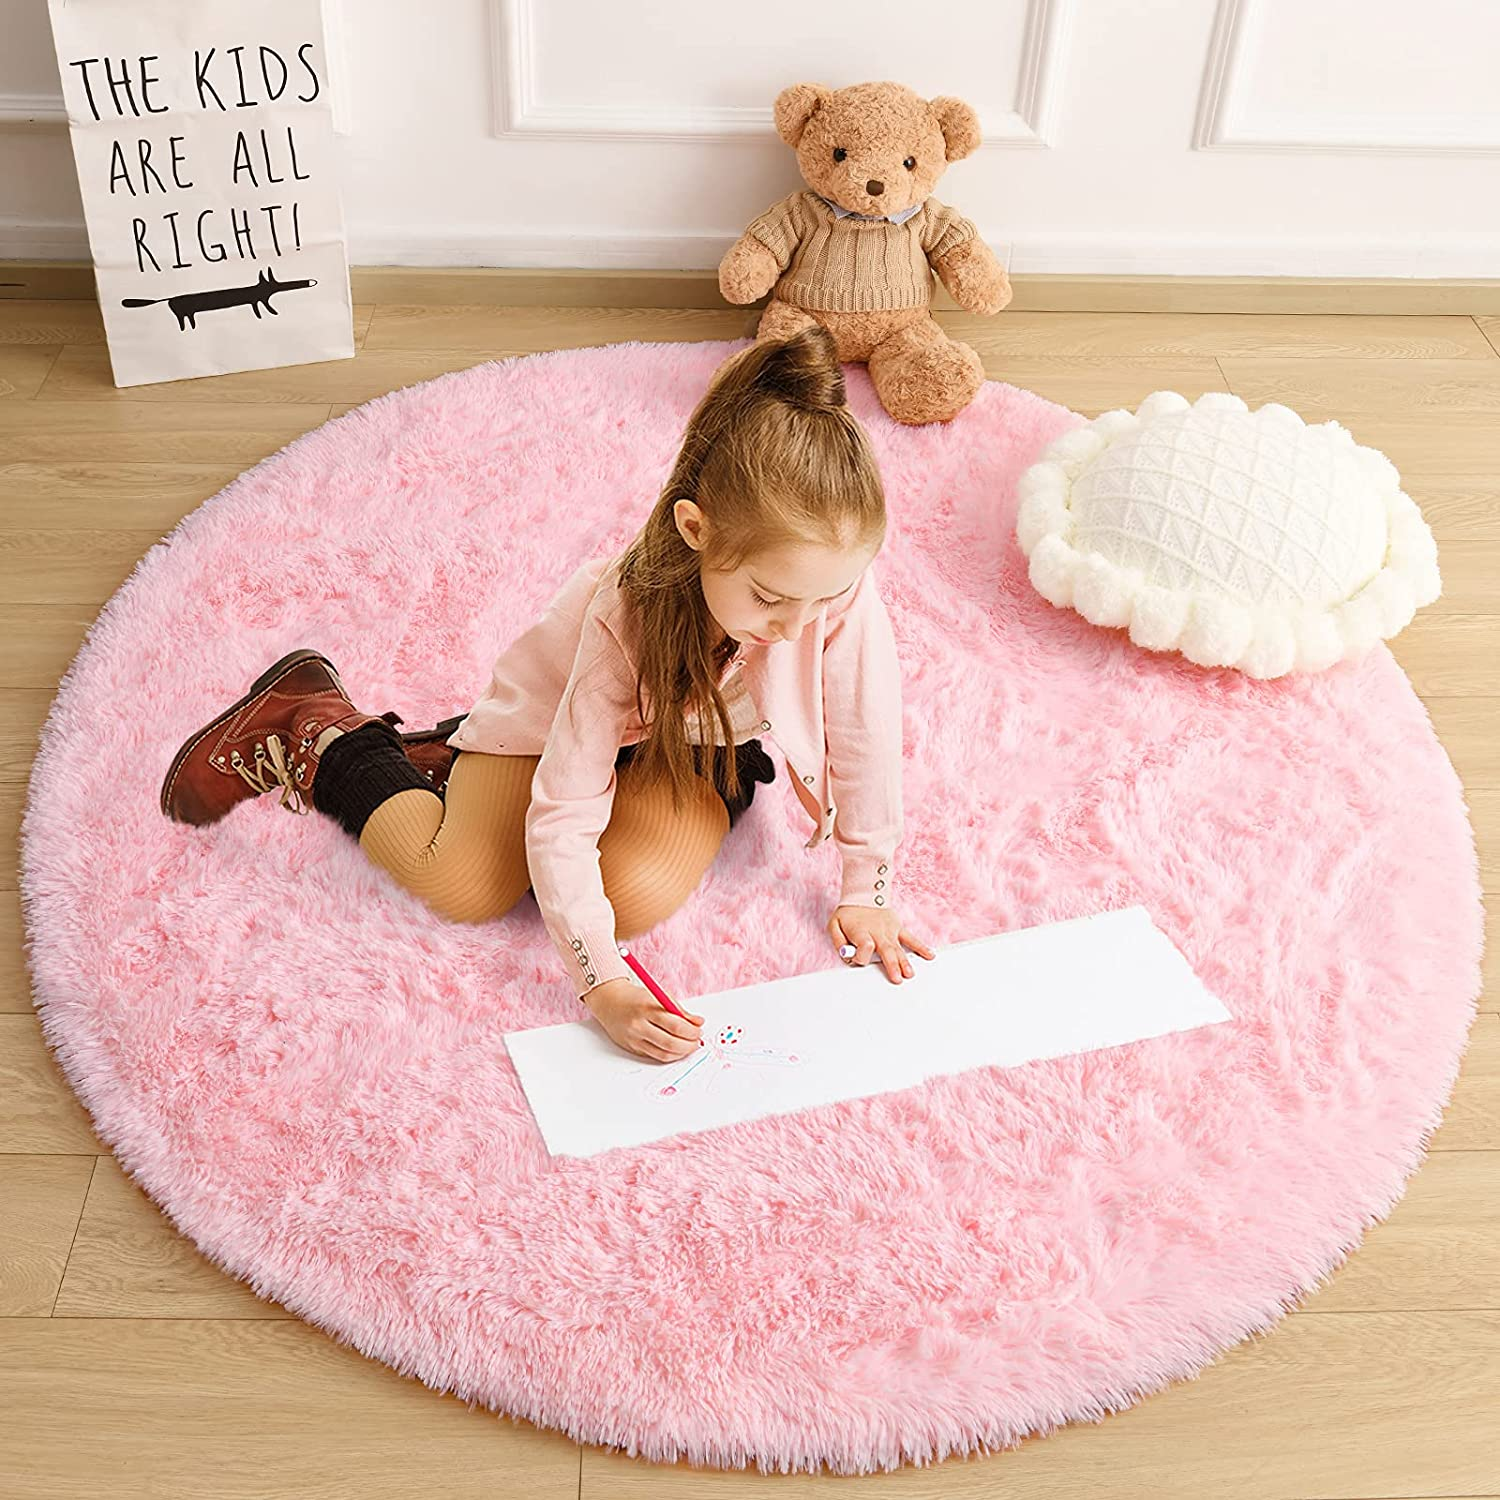 Cydiria Pink Round Rugs for Teens Girls Kids Bedroom, Cute Fluffy Circle Shaggy Area Rug Fuzzy Carpet for Baby Nursery Home Decor, 4Ft Soft Circular Rugs for Living Room, Plush Princess Castle Rugs